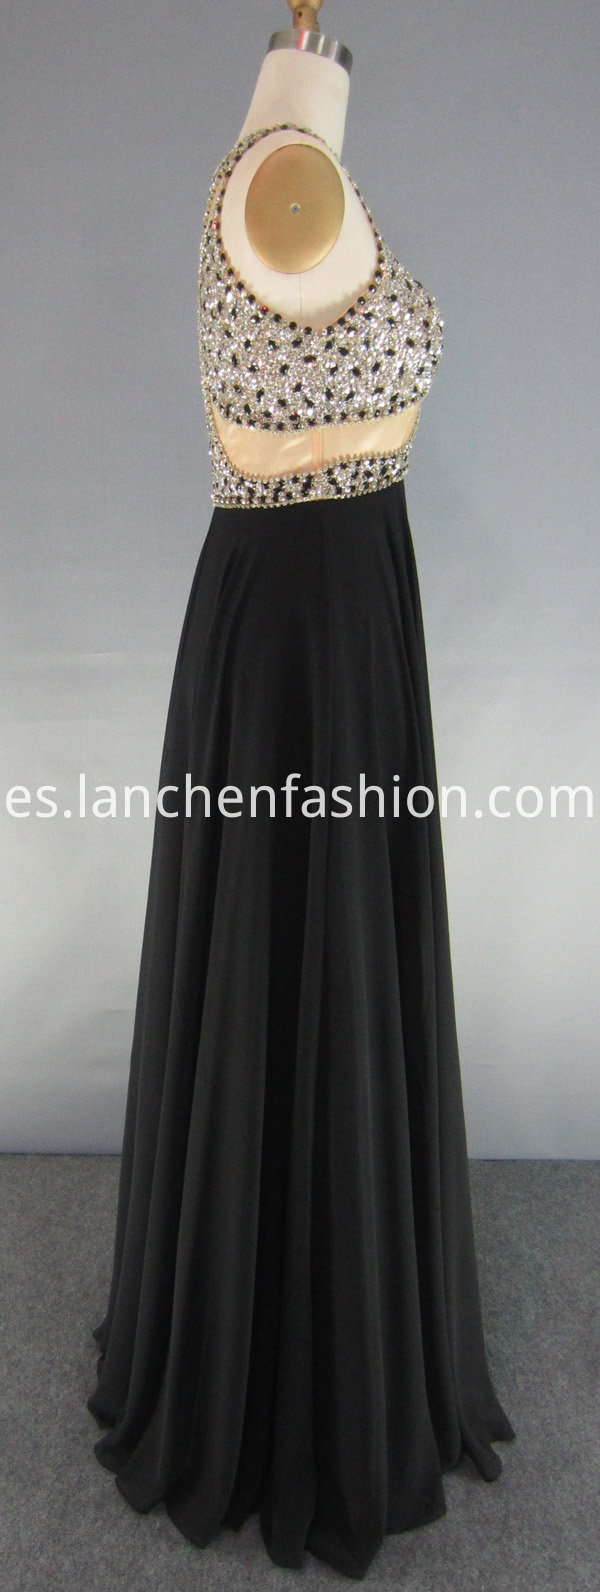 Long Chiffon Prom Dresses